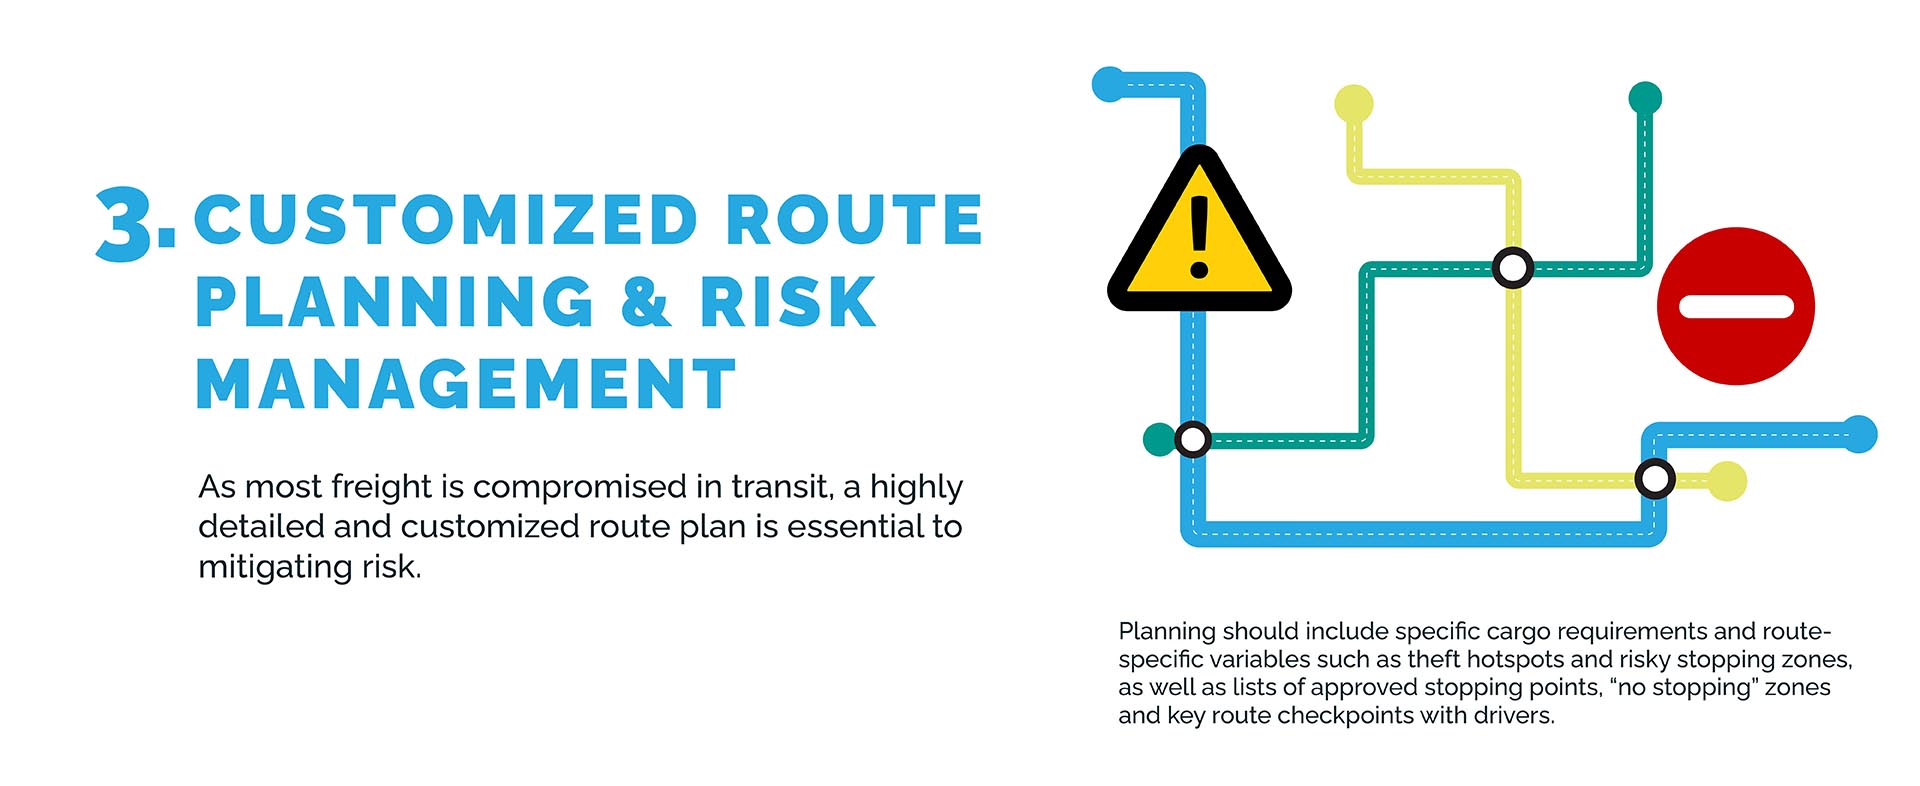 Customized Route Planning & Risk Management